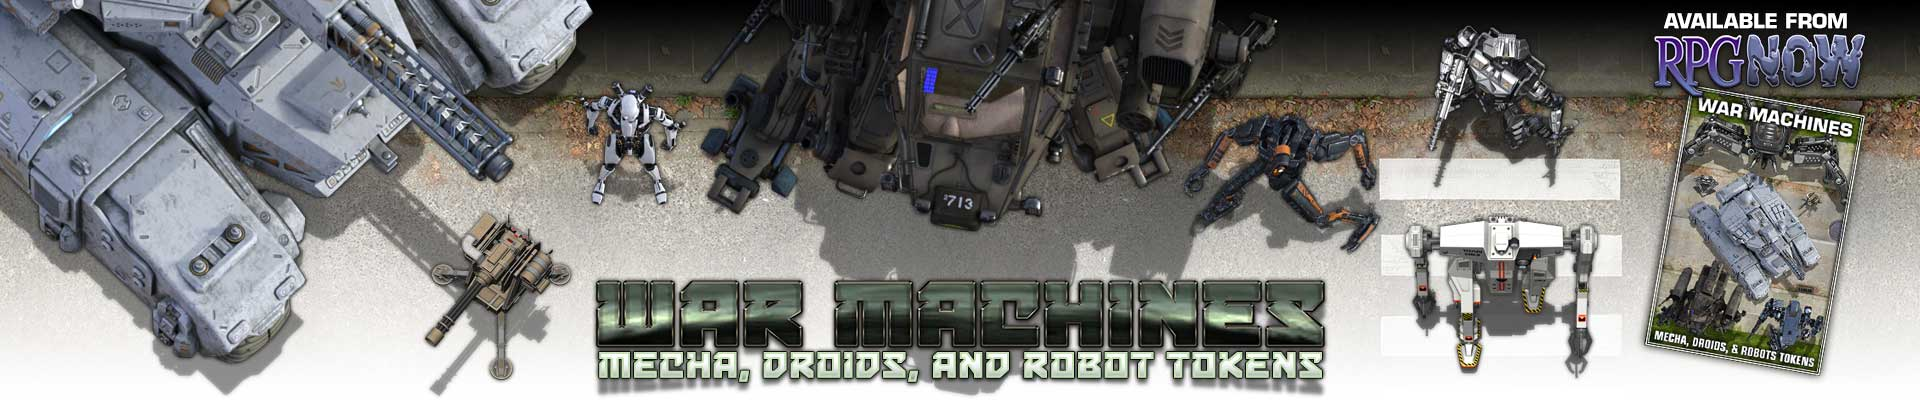 War Machines - Mecha, Droids, and Robot Tokens